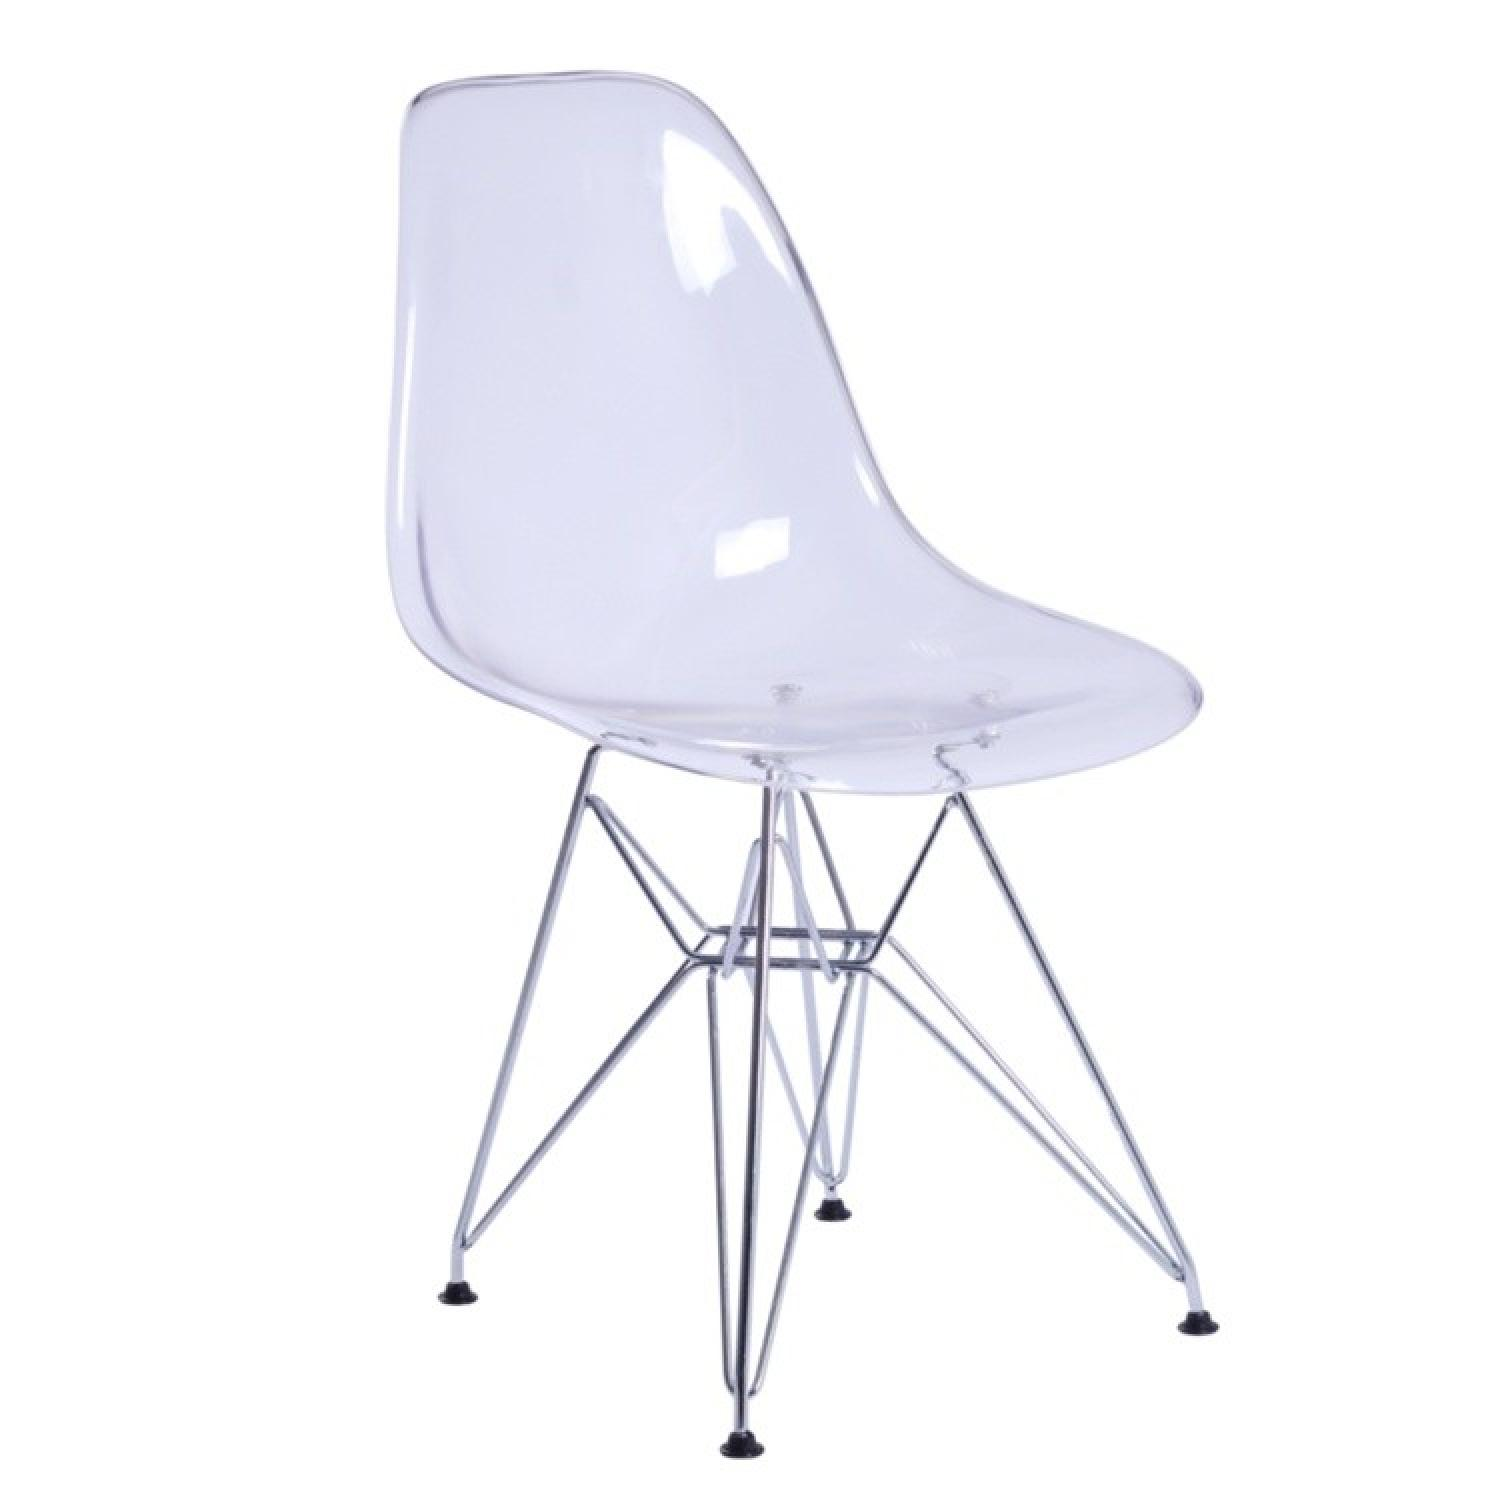 Retro Style Transparent Acrylic Chair w/ Metal Wire Legs